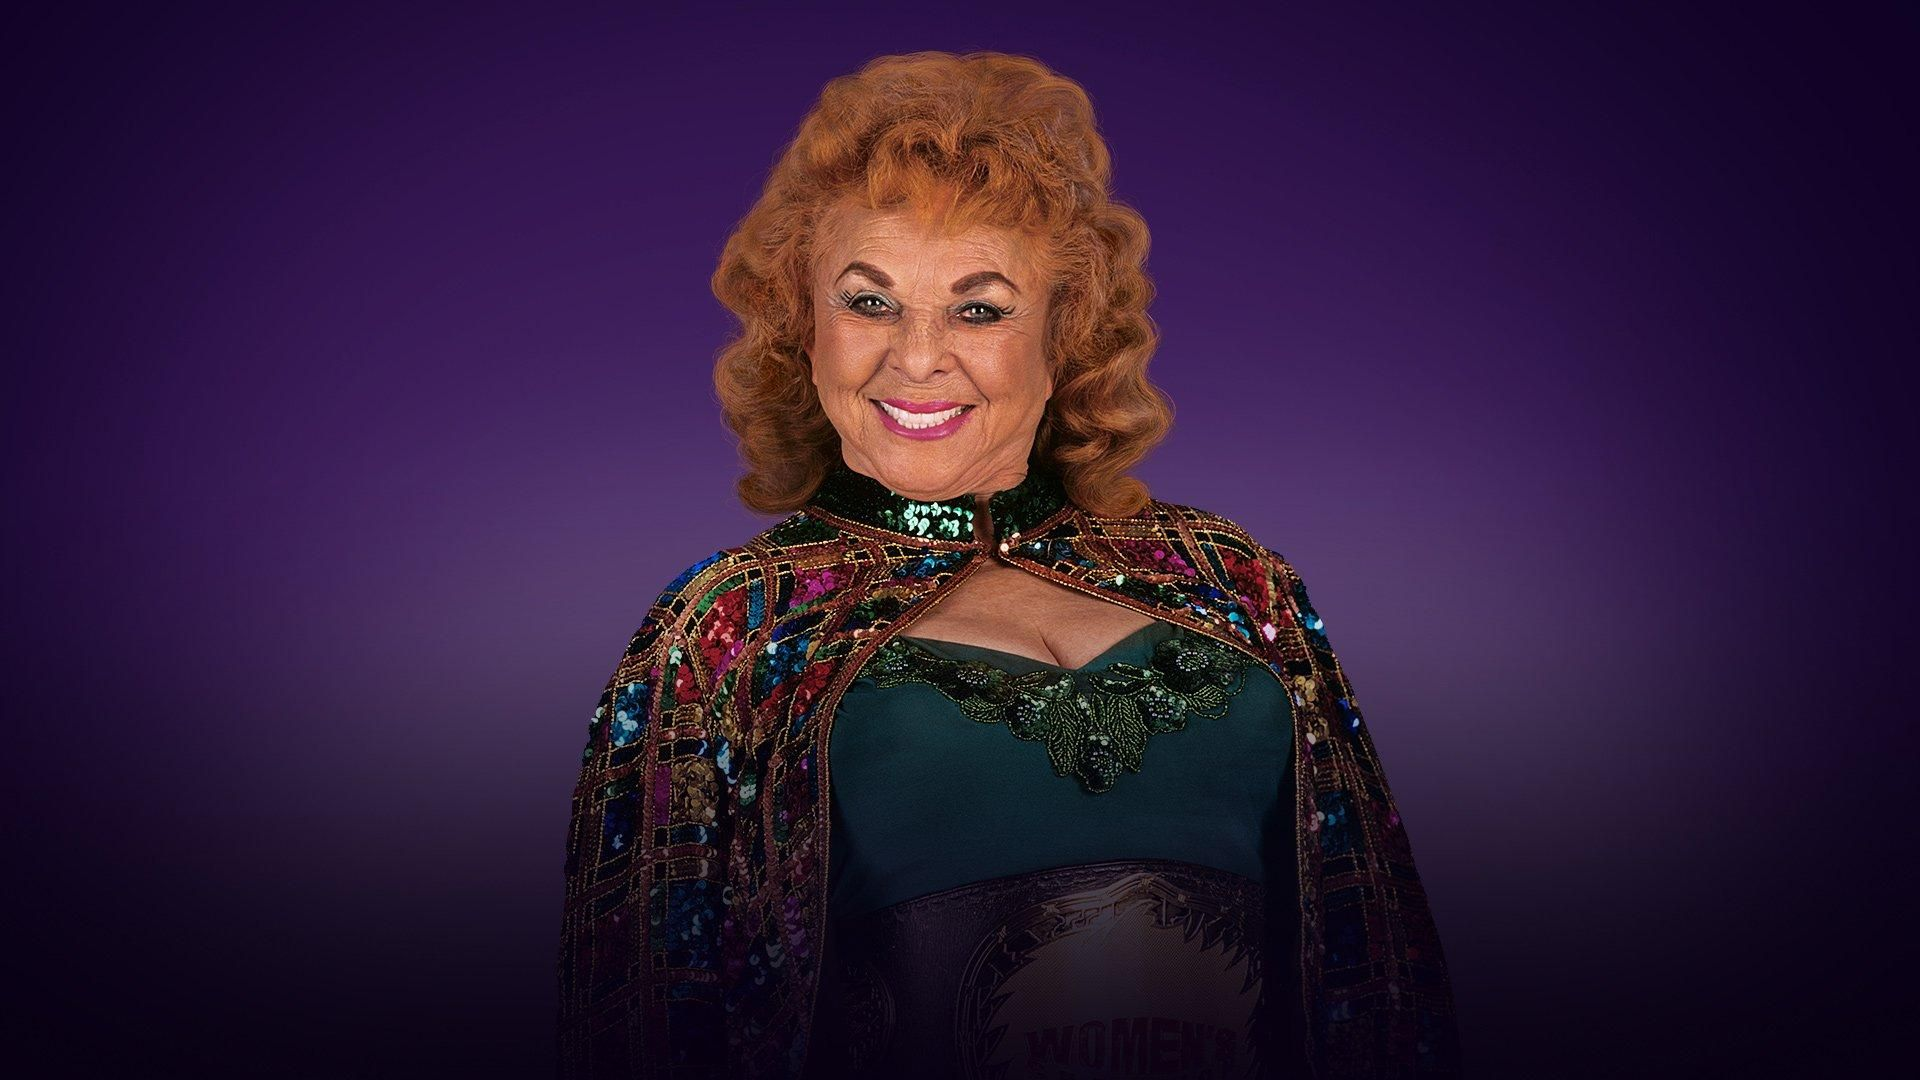 WWE announces Fabulous Moolah memorial battle royal